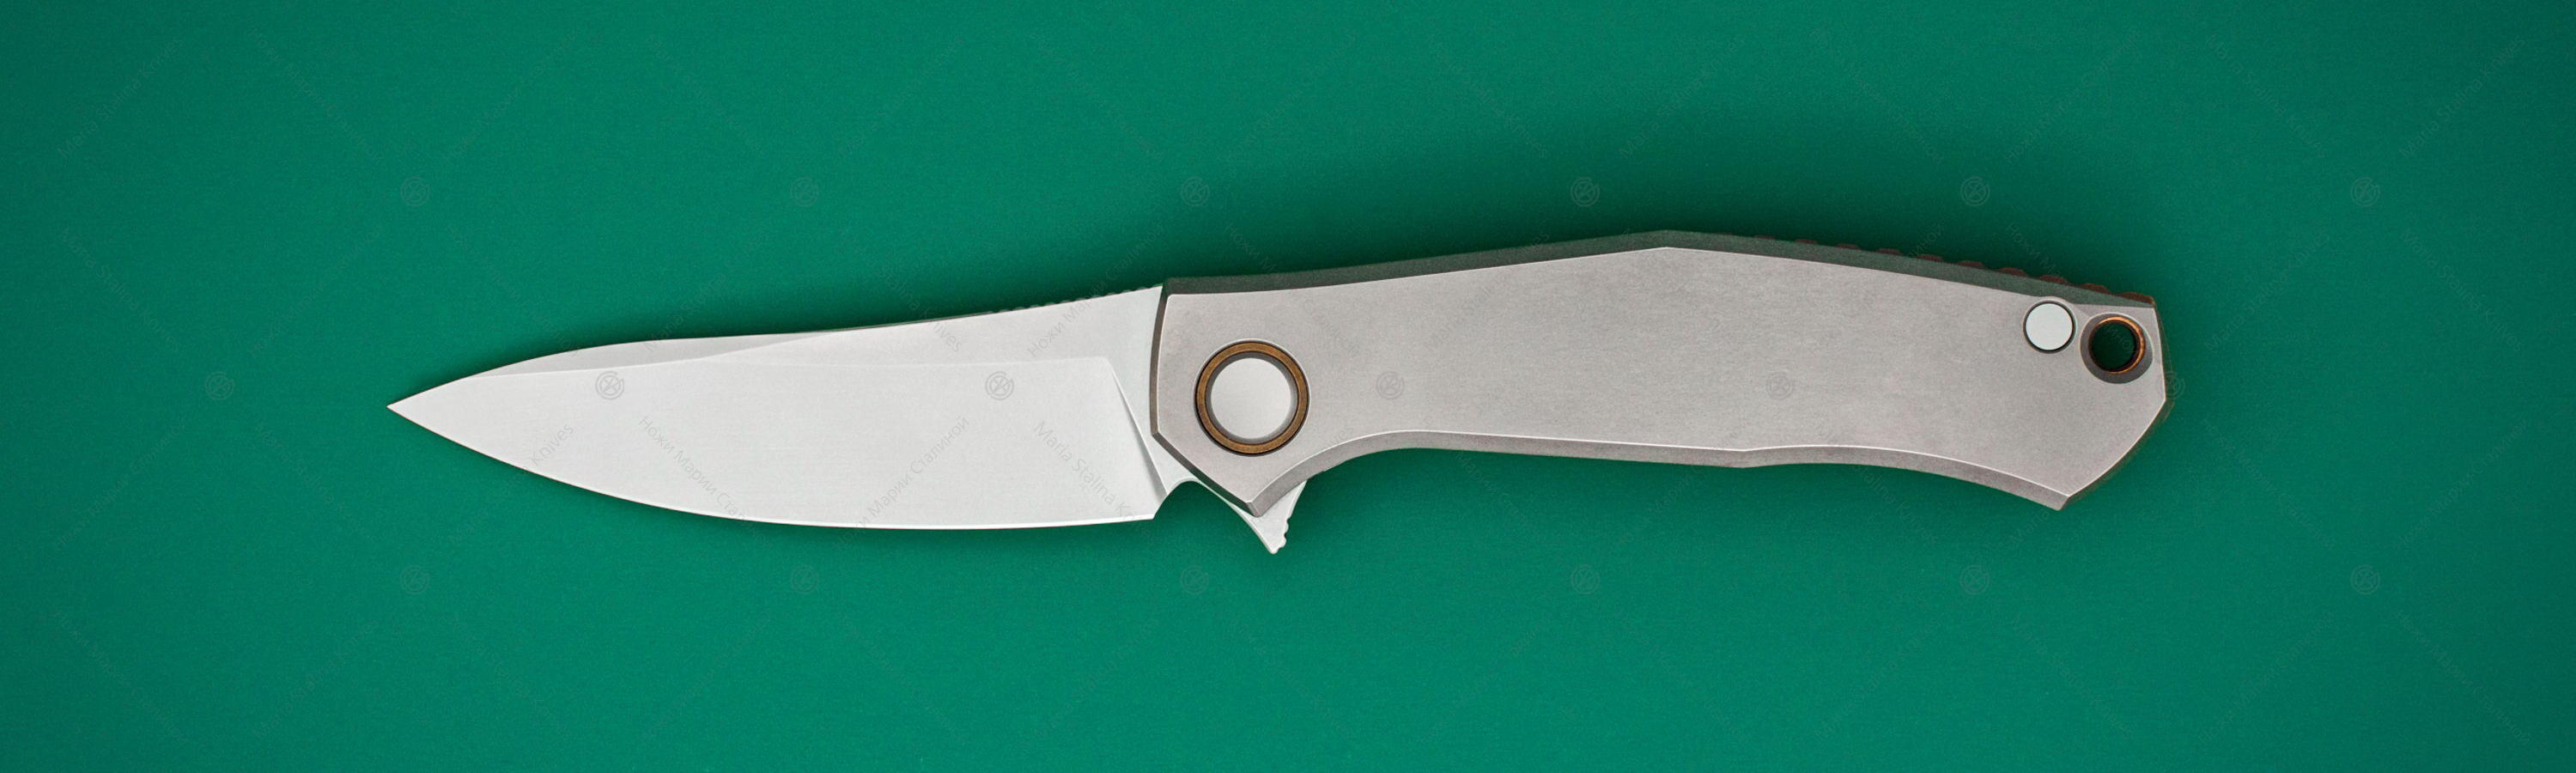 SBW knife